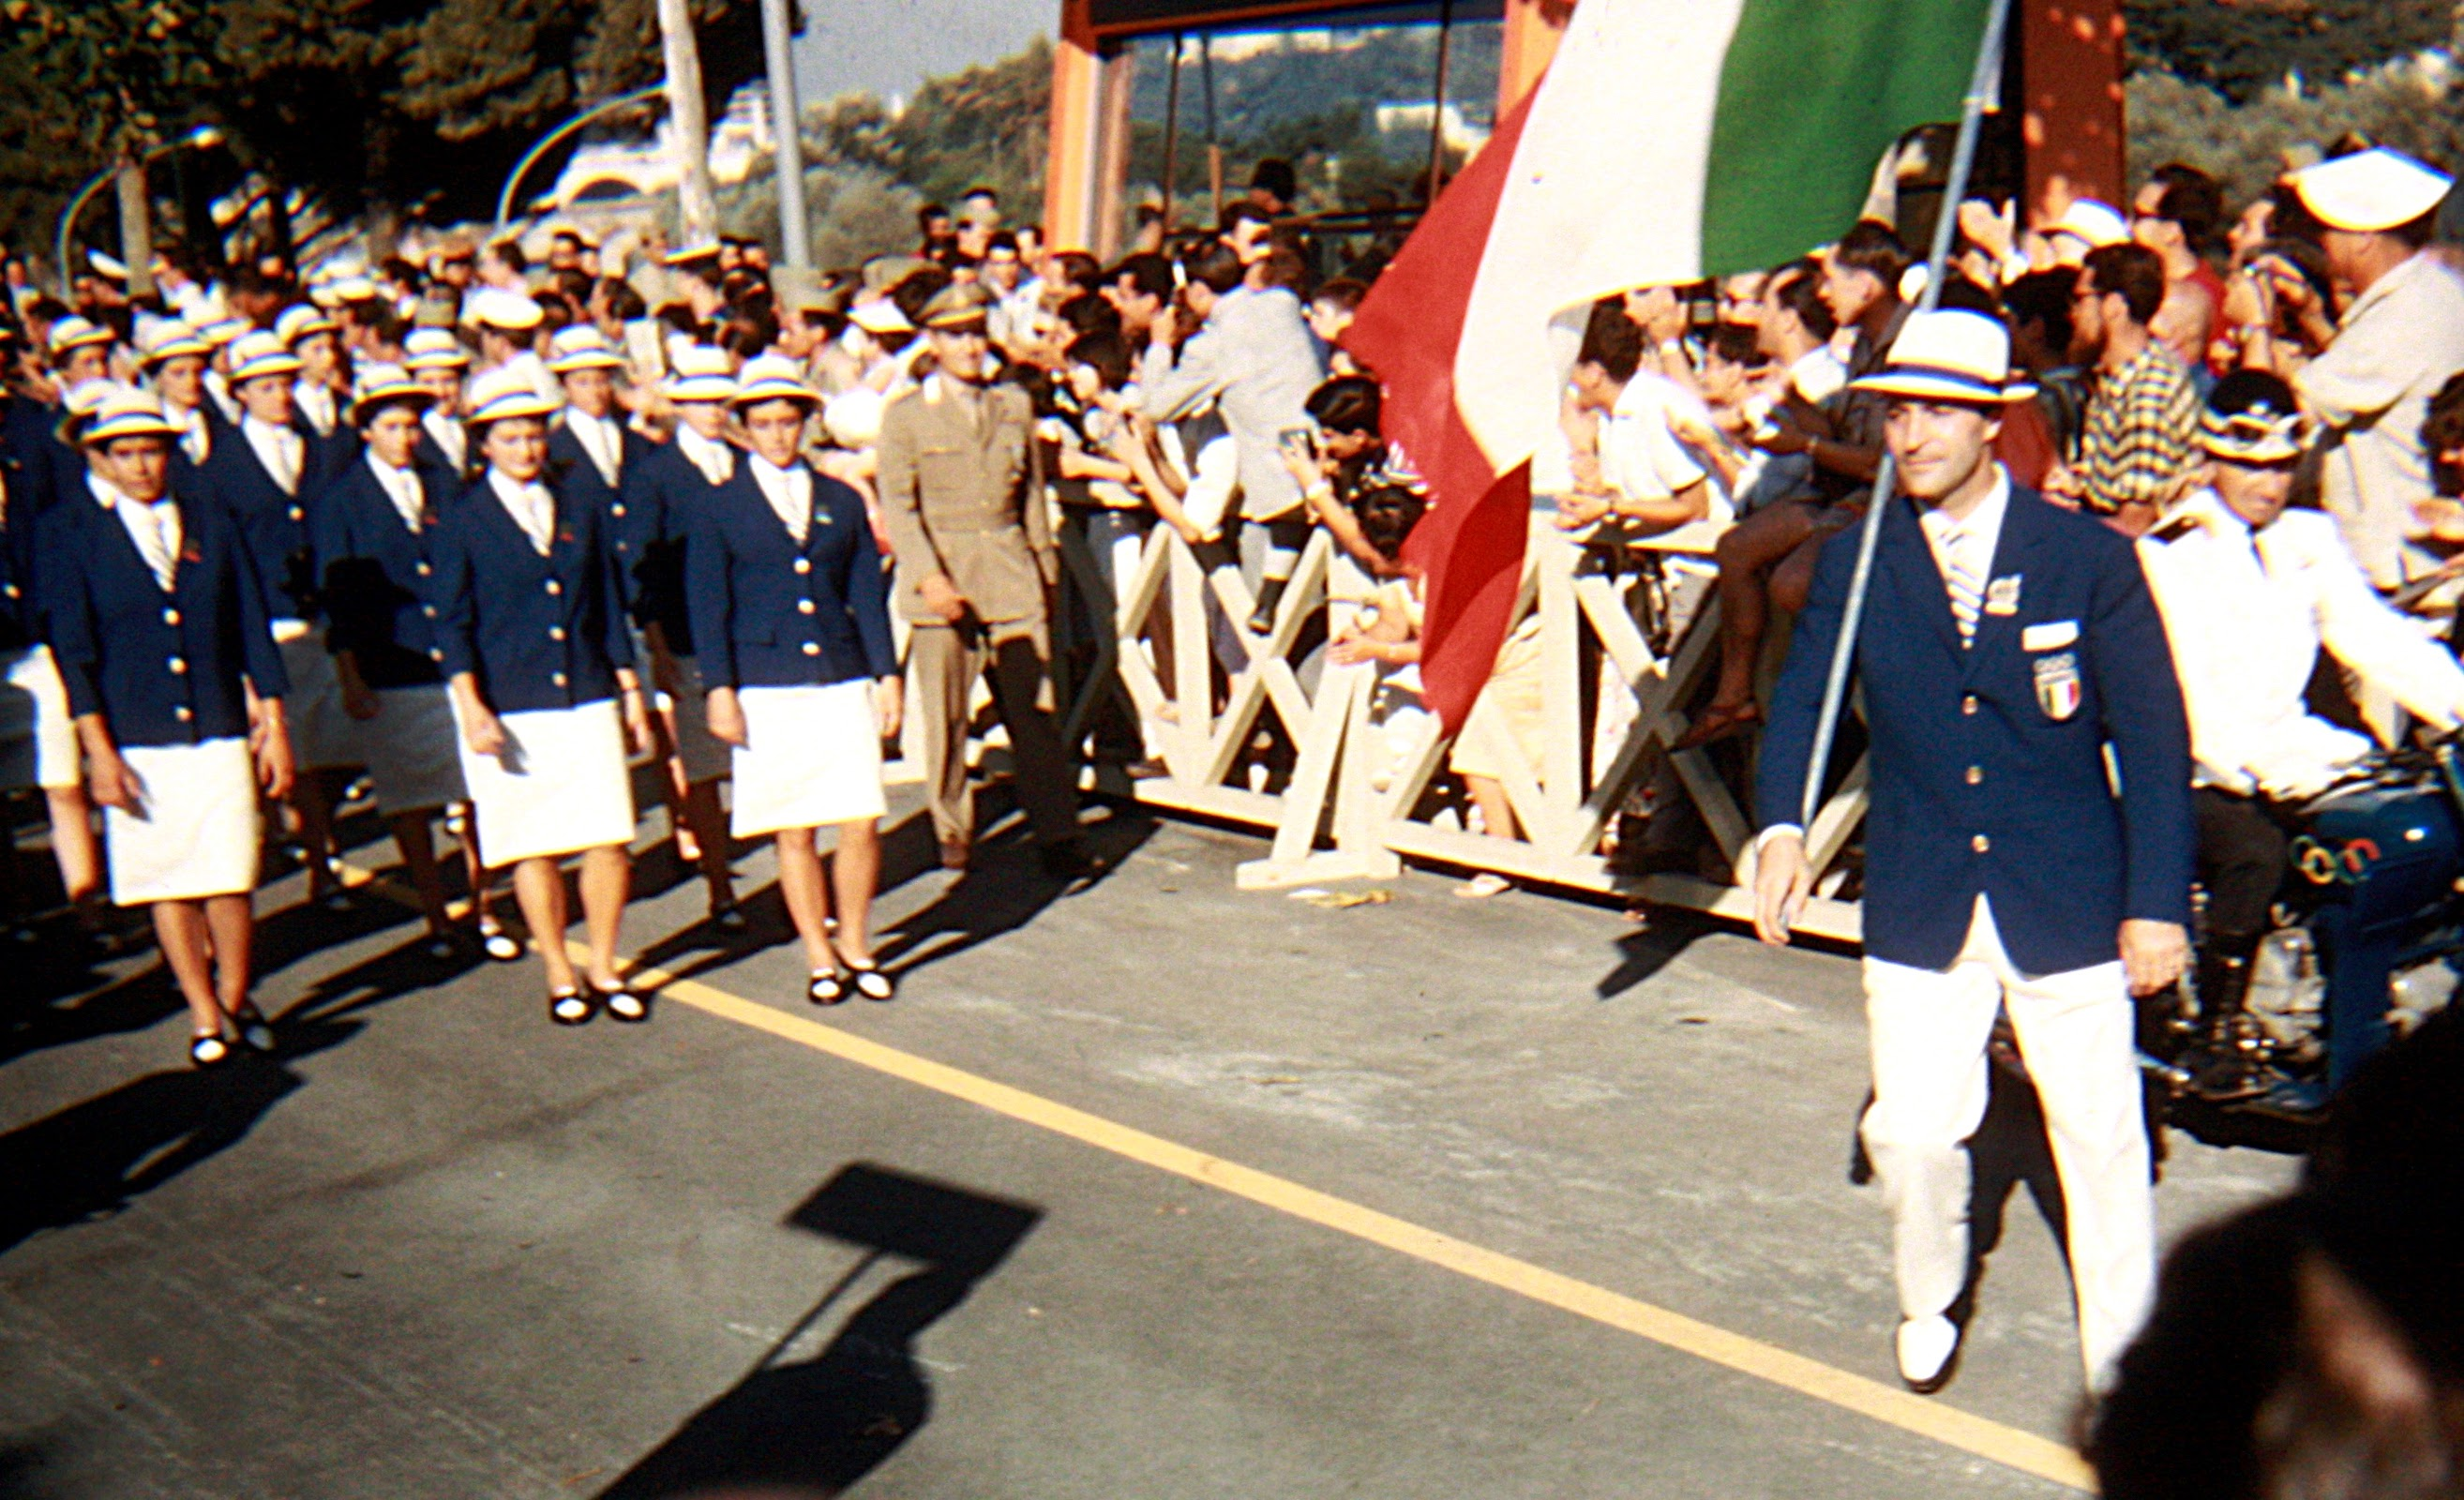 The home Italian team proudly enter the stadium for the opening ceremony. (Photo: © Sean B. Fox)